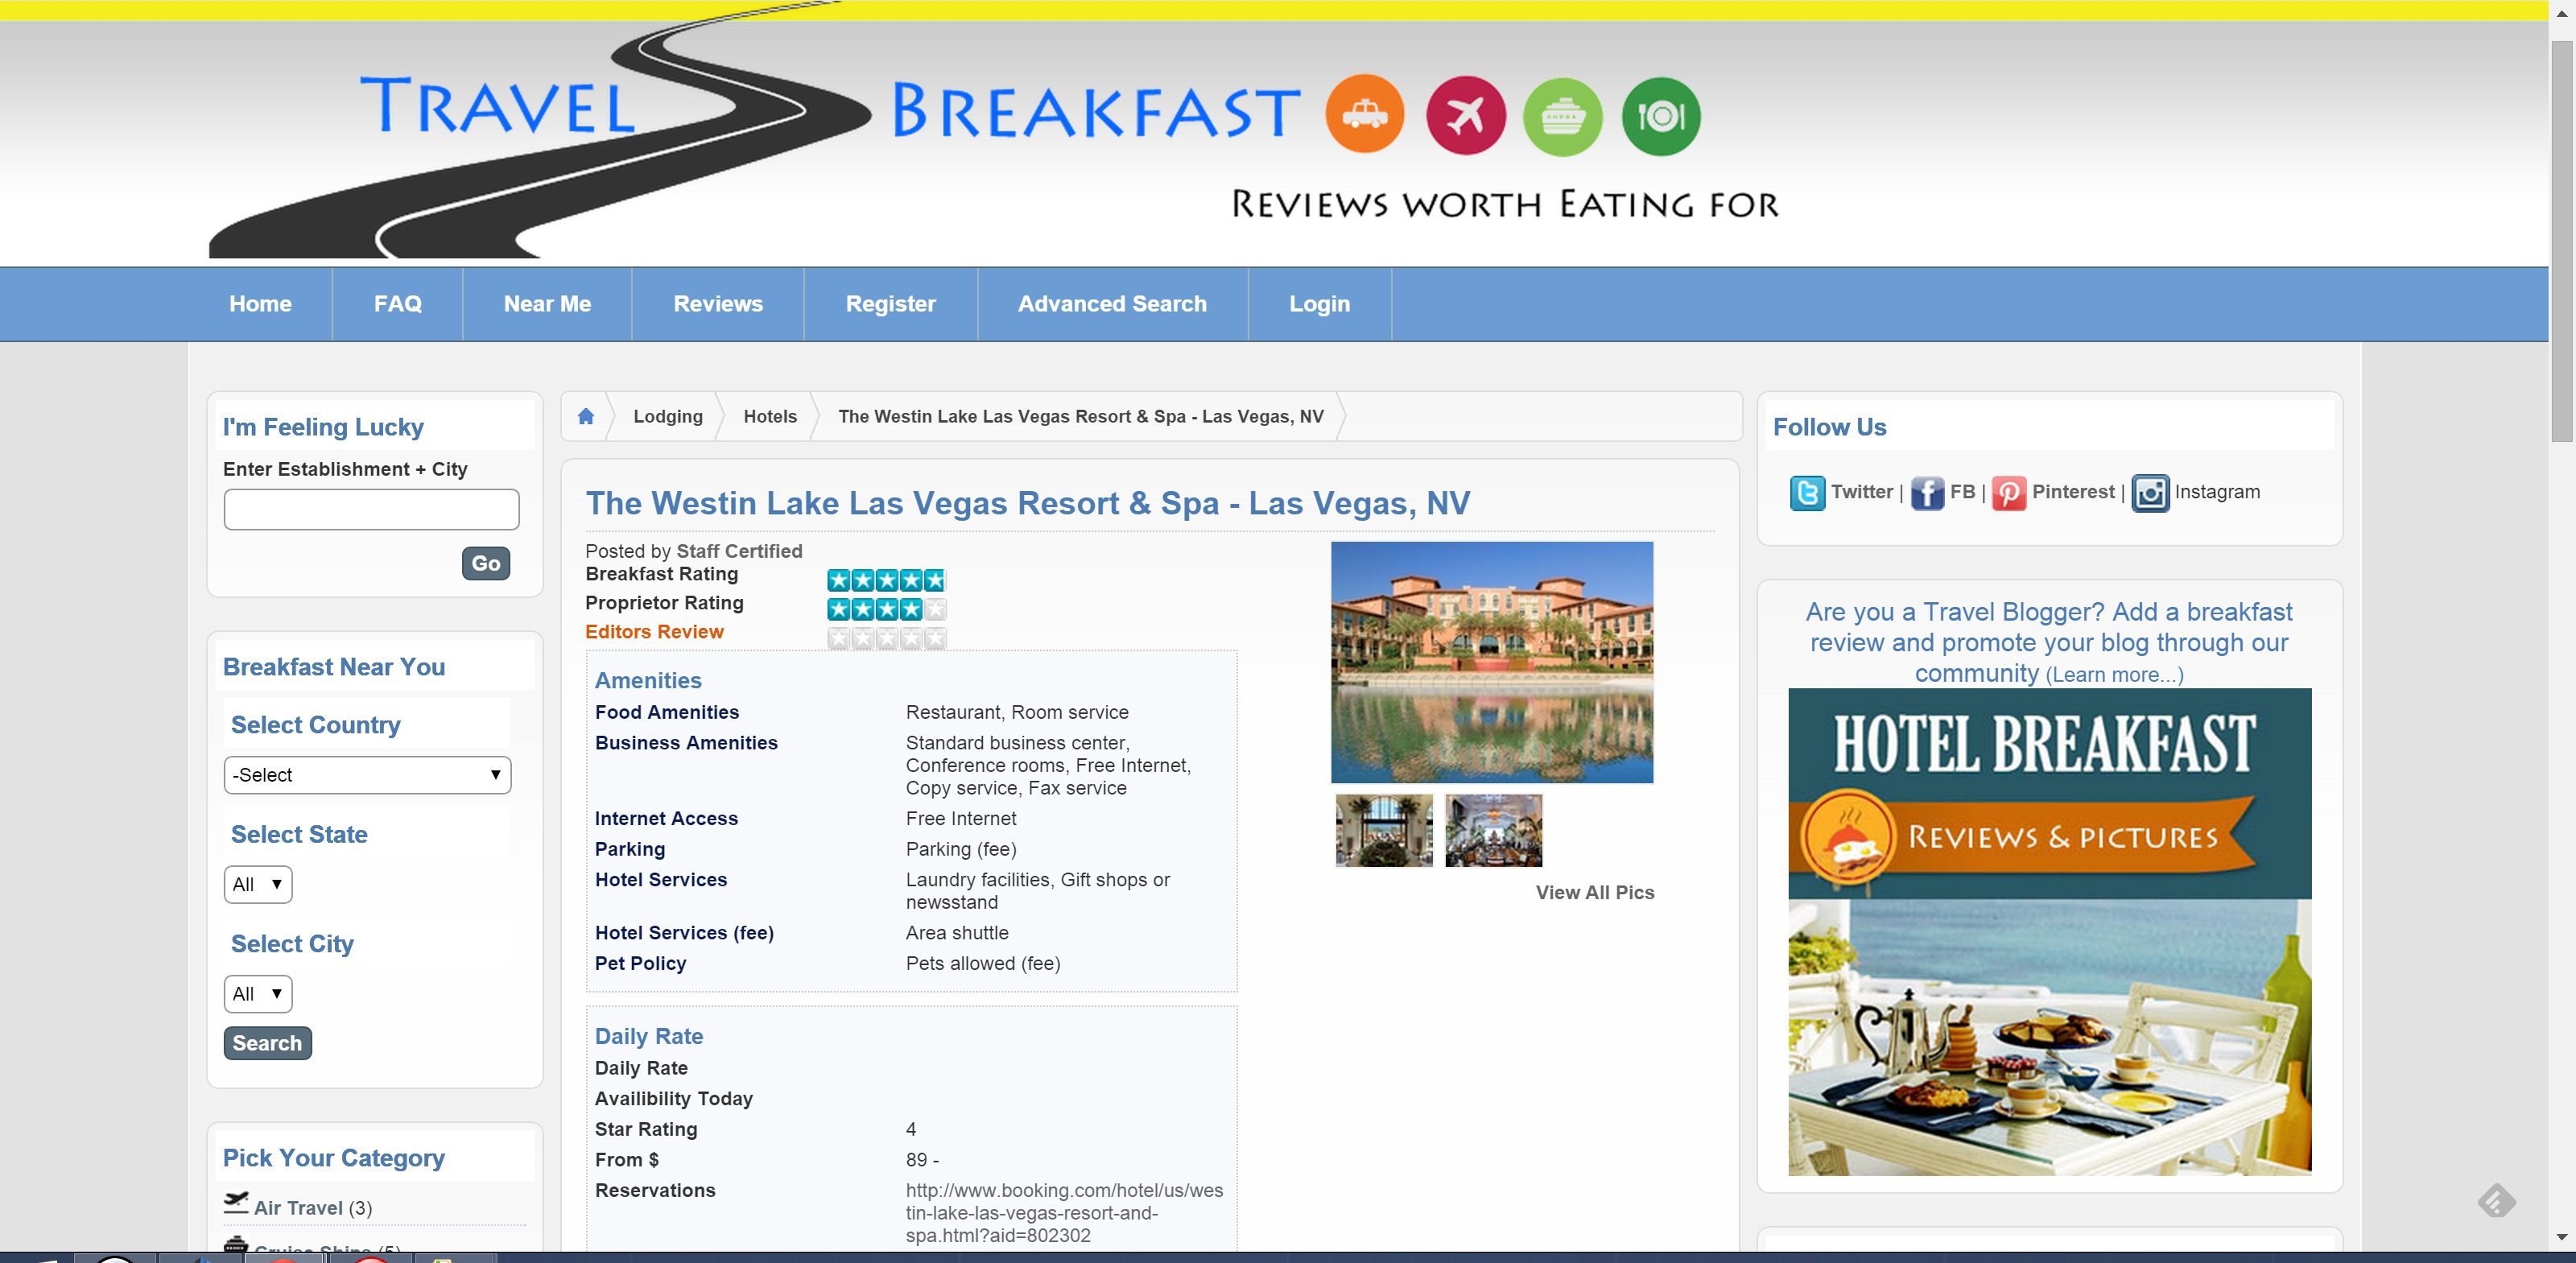 Website Tip: A site dedicated to breakfast reviews